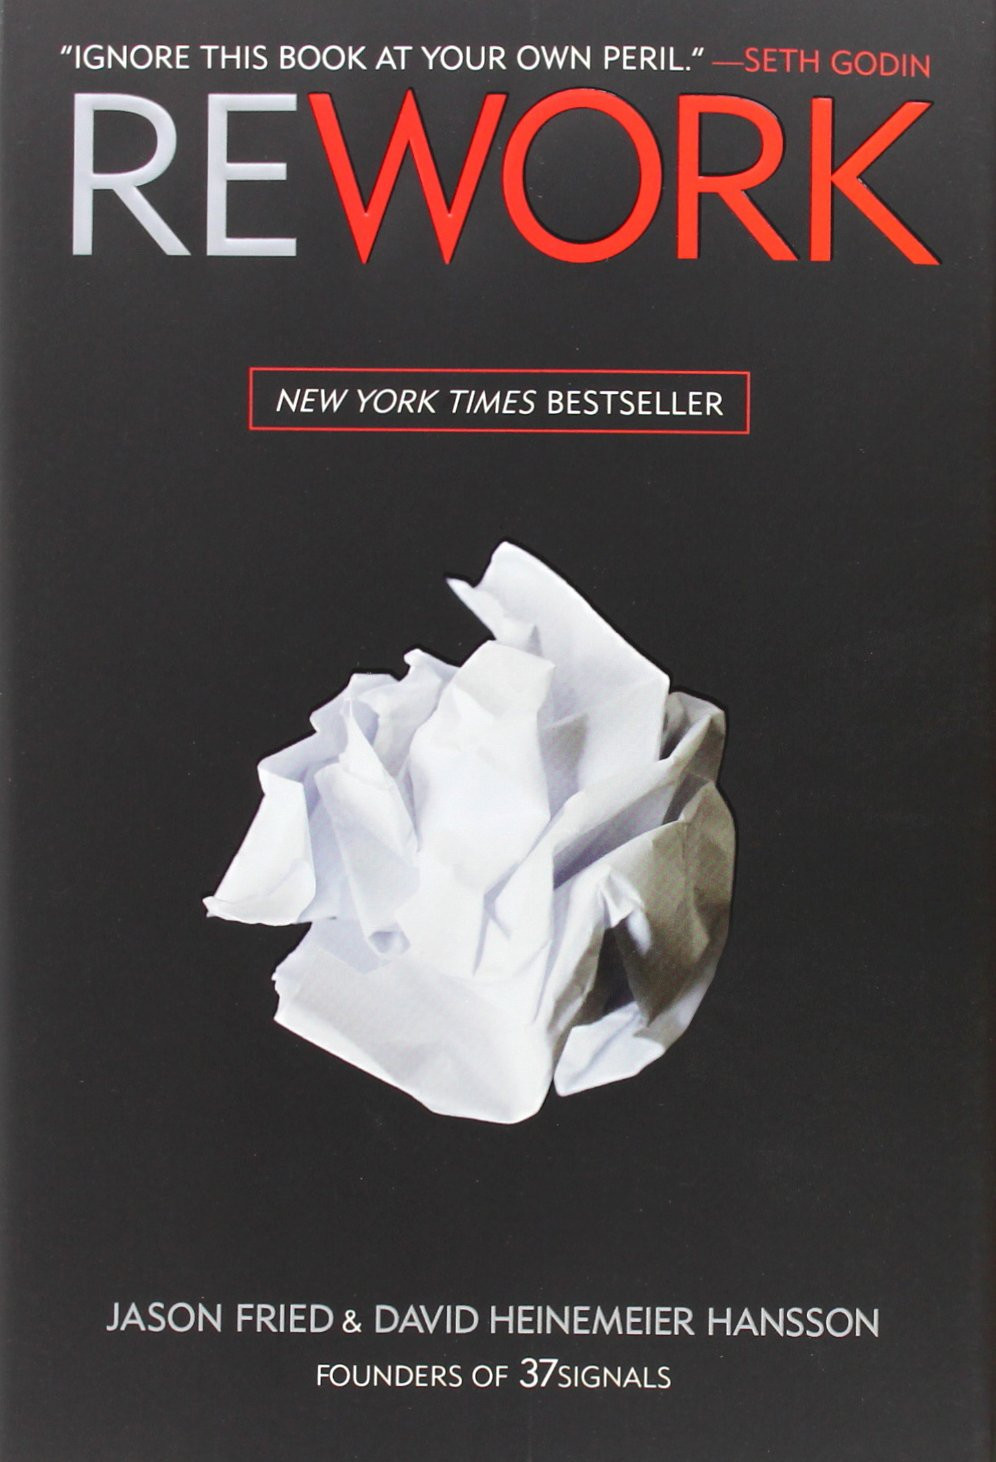 """Link to Amazon link for """"Rework"""" - one of my personal library classics on being efficient and productive. Destiny Yarbro blog."""